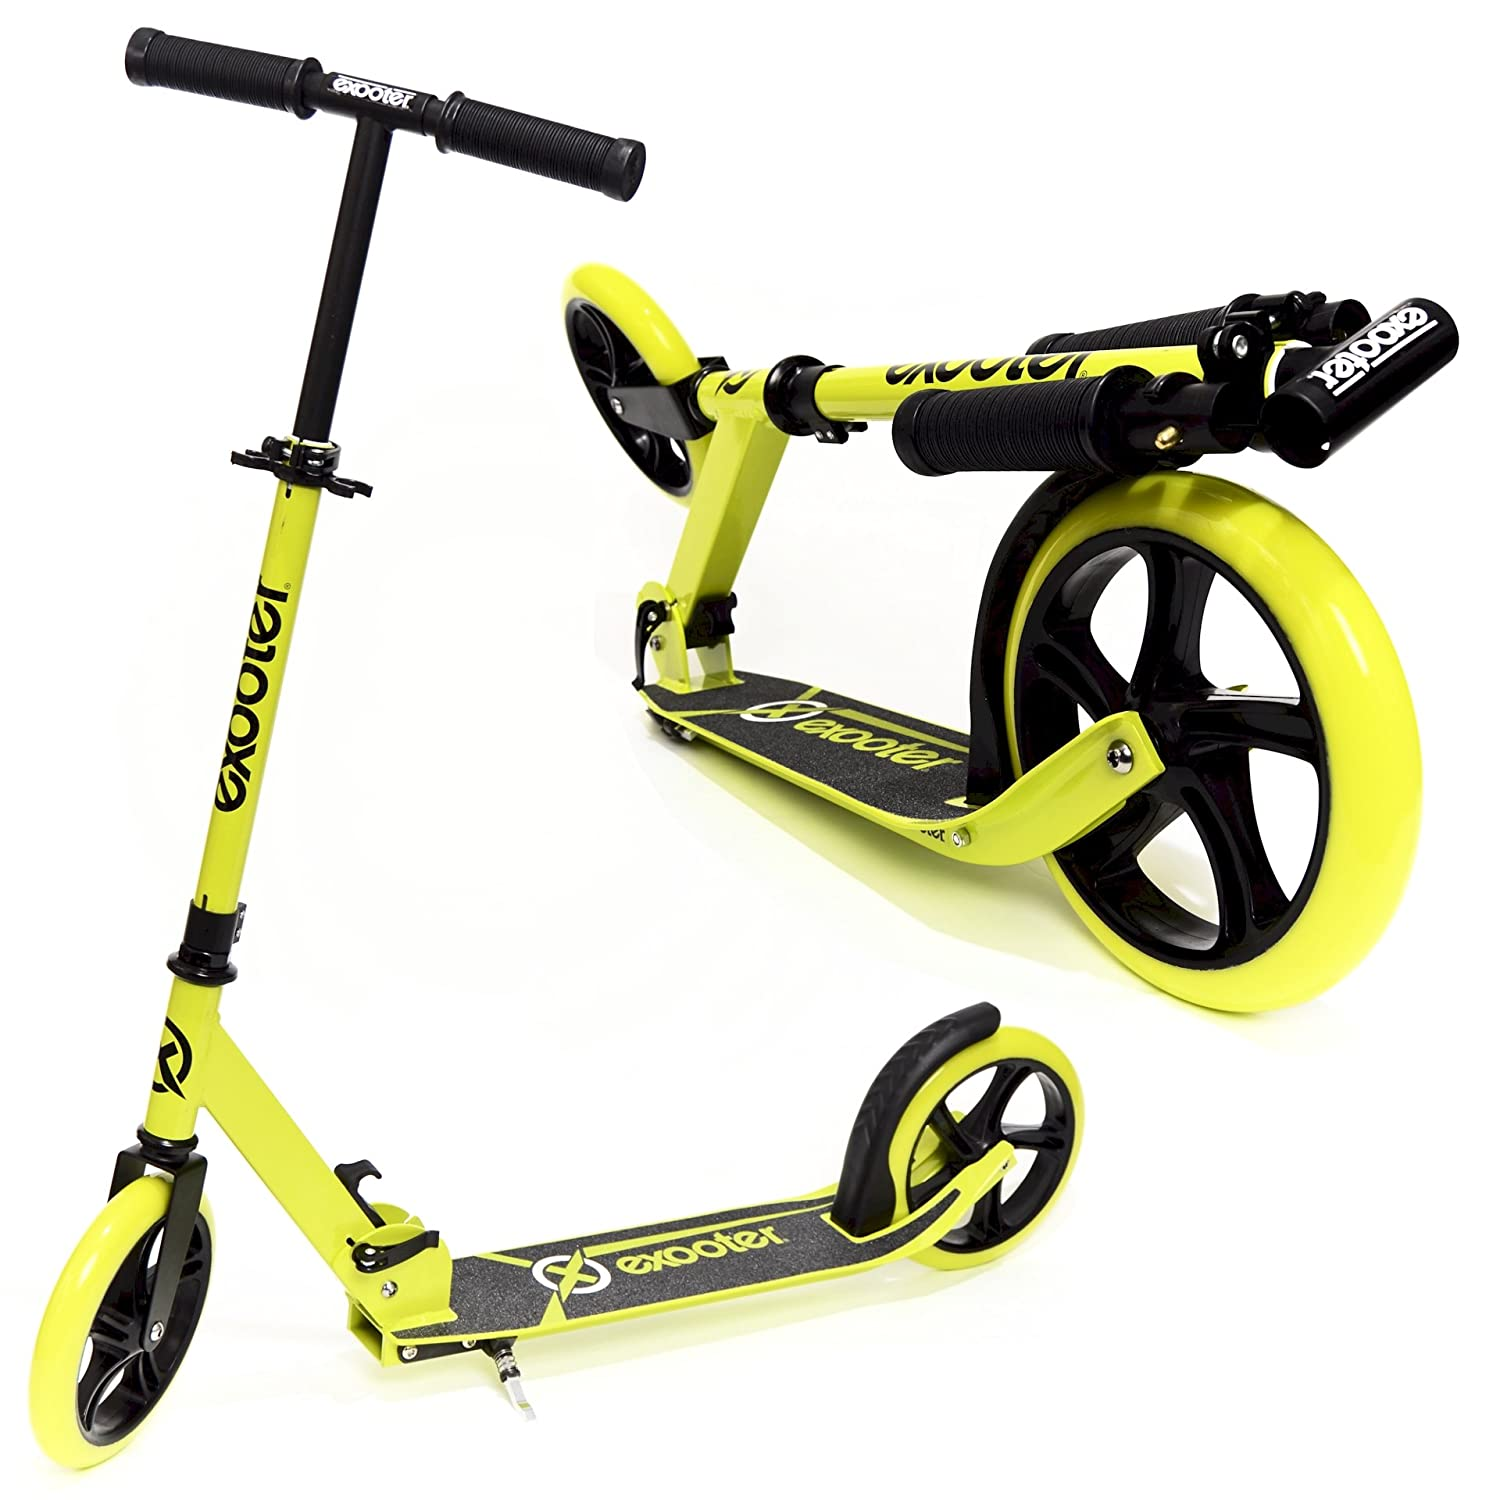 EXOOTER M1450 5XL Teen Cruiser Kick Scooter With 200mm Wheels And Kick Stand